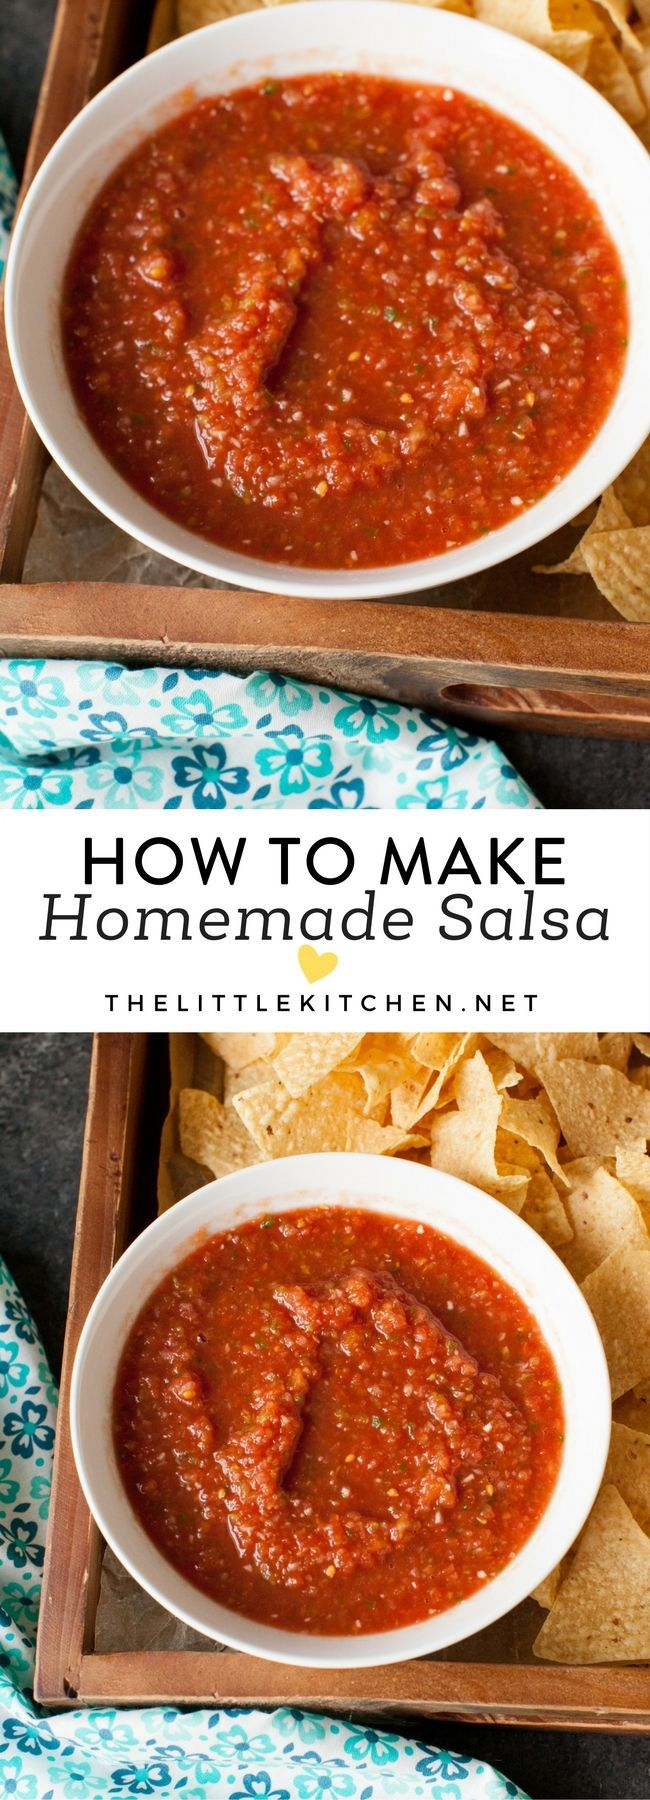 How to make salsa from thelittlekitchen.net @TheLittleKitchn